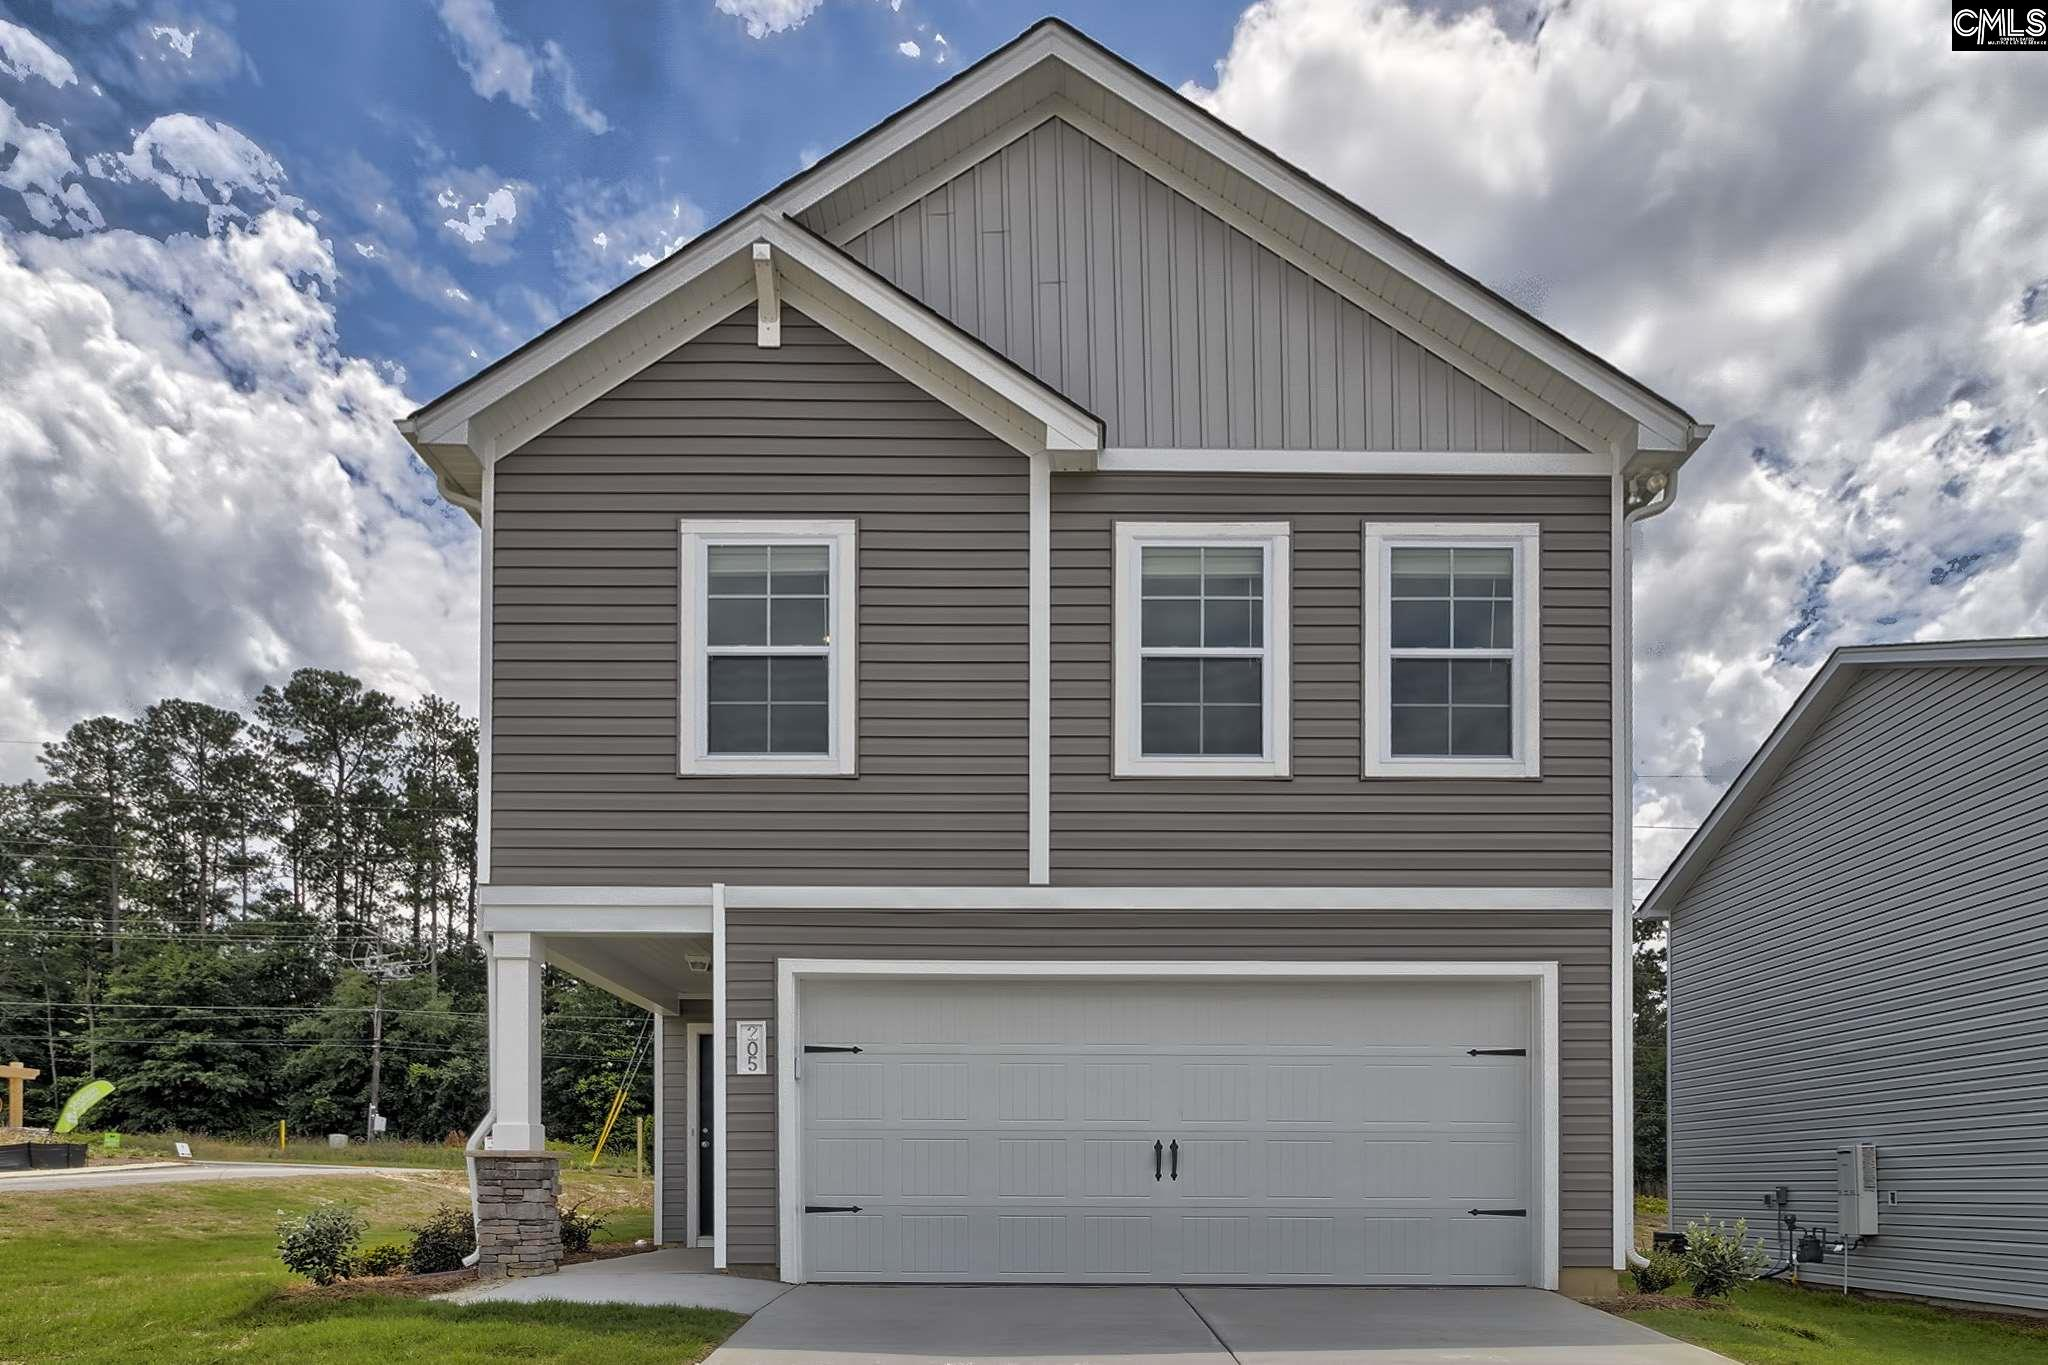 335 Liliana Columbia, SC 29223